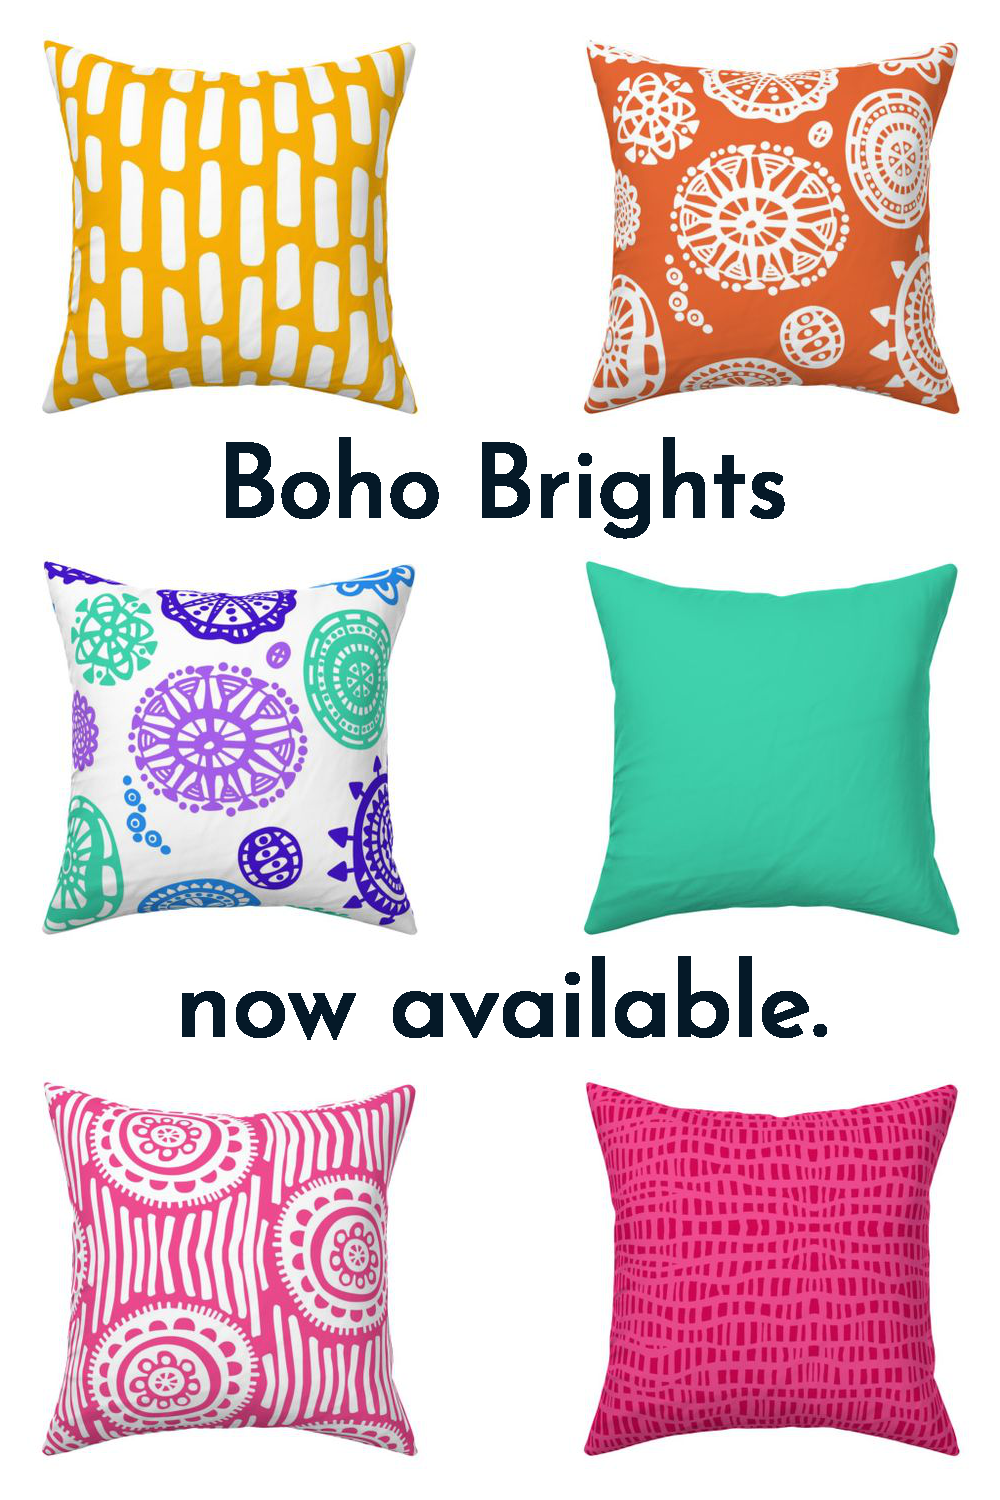 Boho Brights home decor collection now at Spoonflower